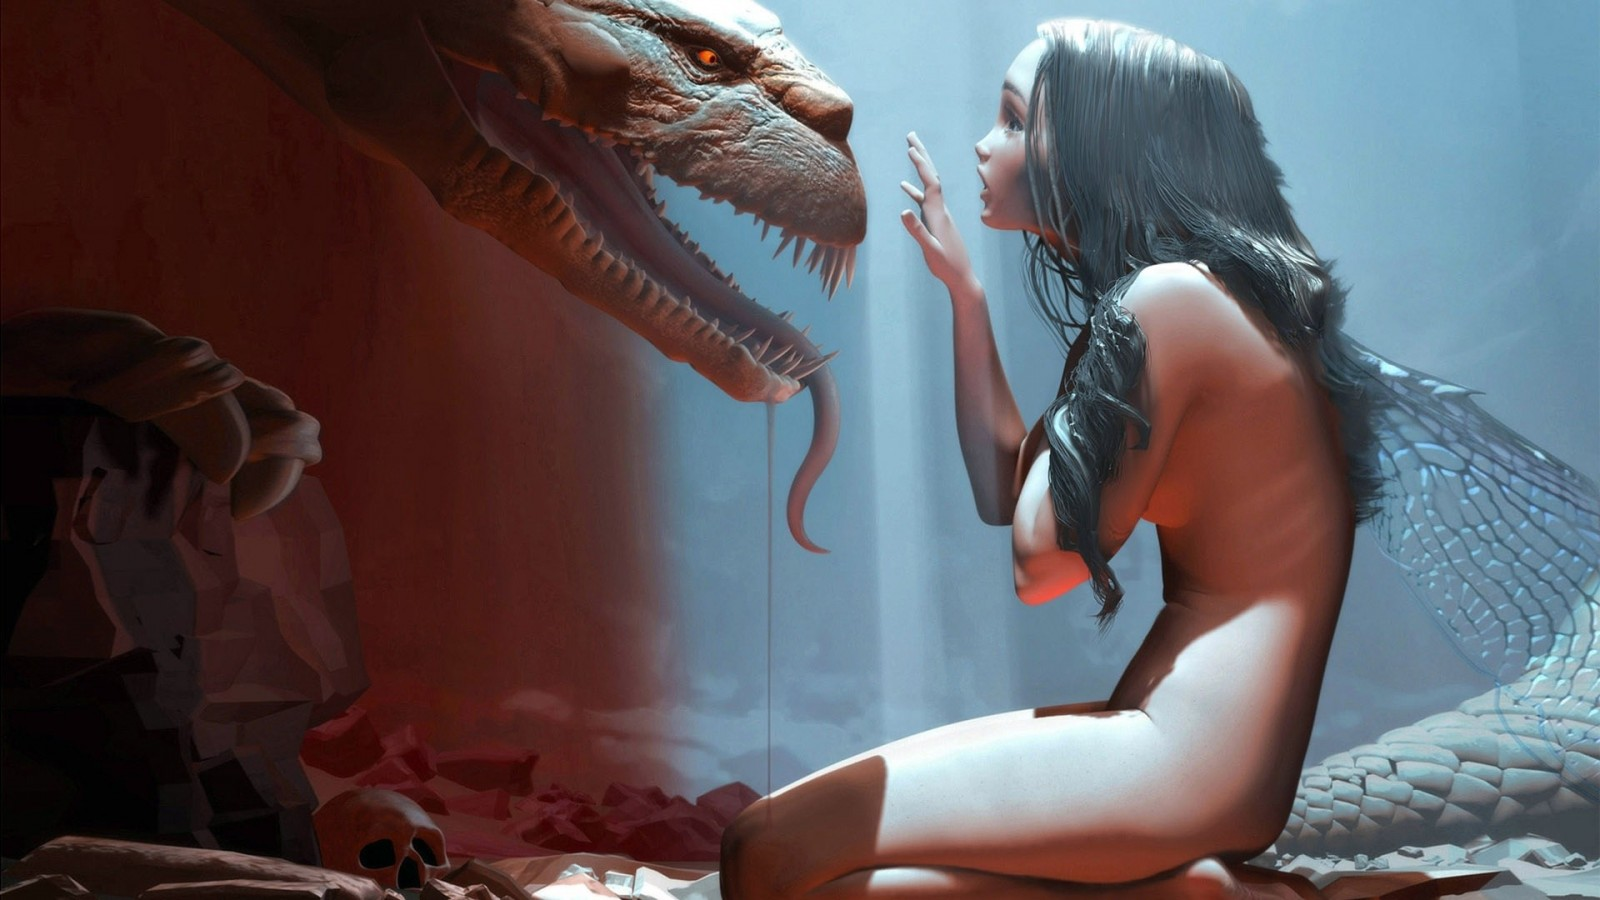 Dragon nude babes wallpaper naked drunk porn star